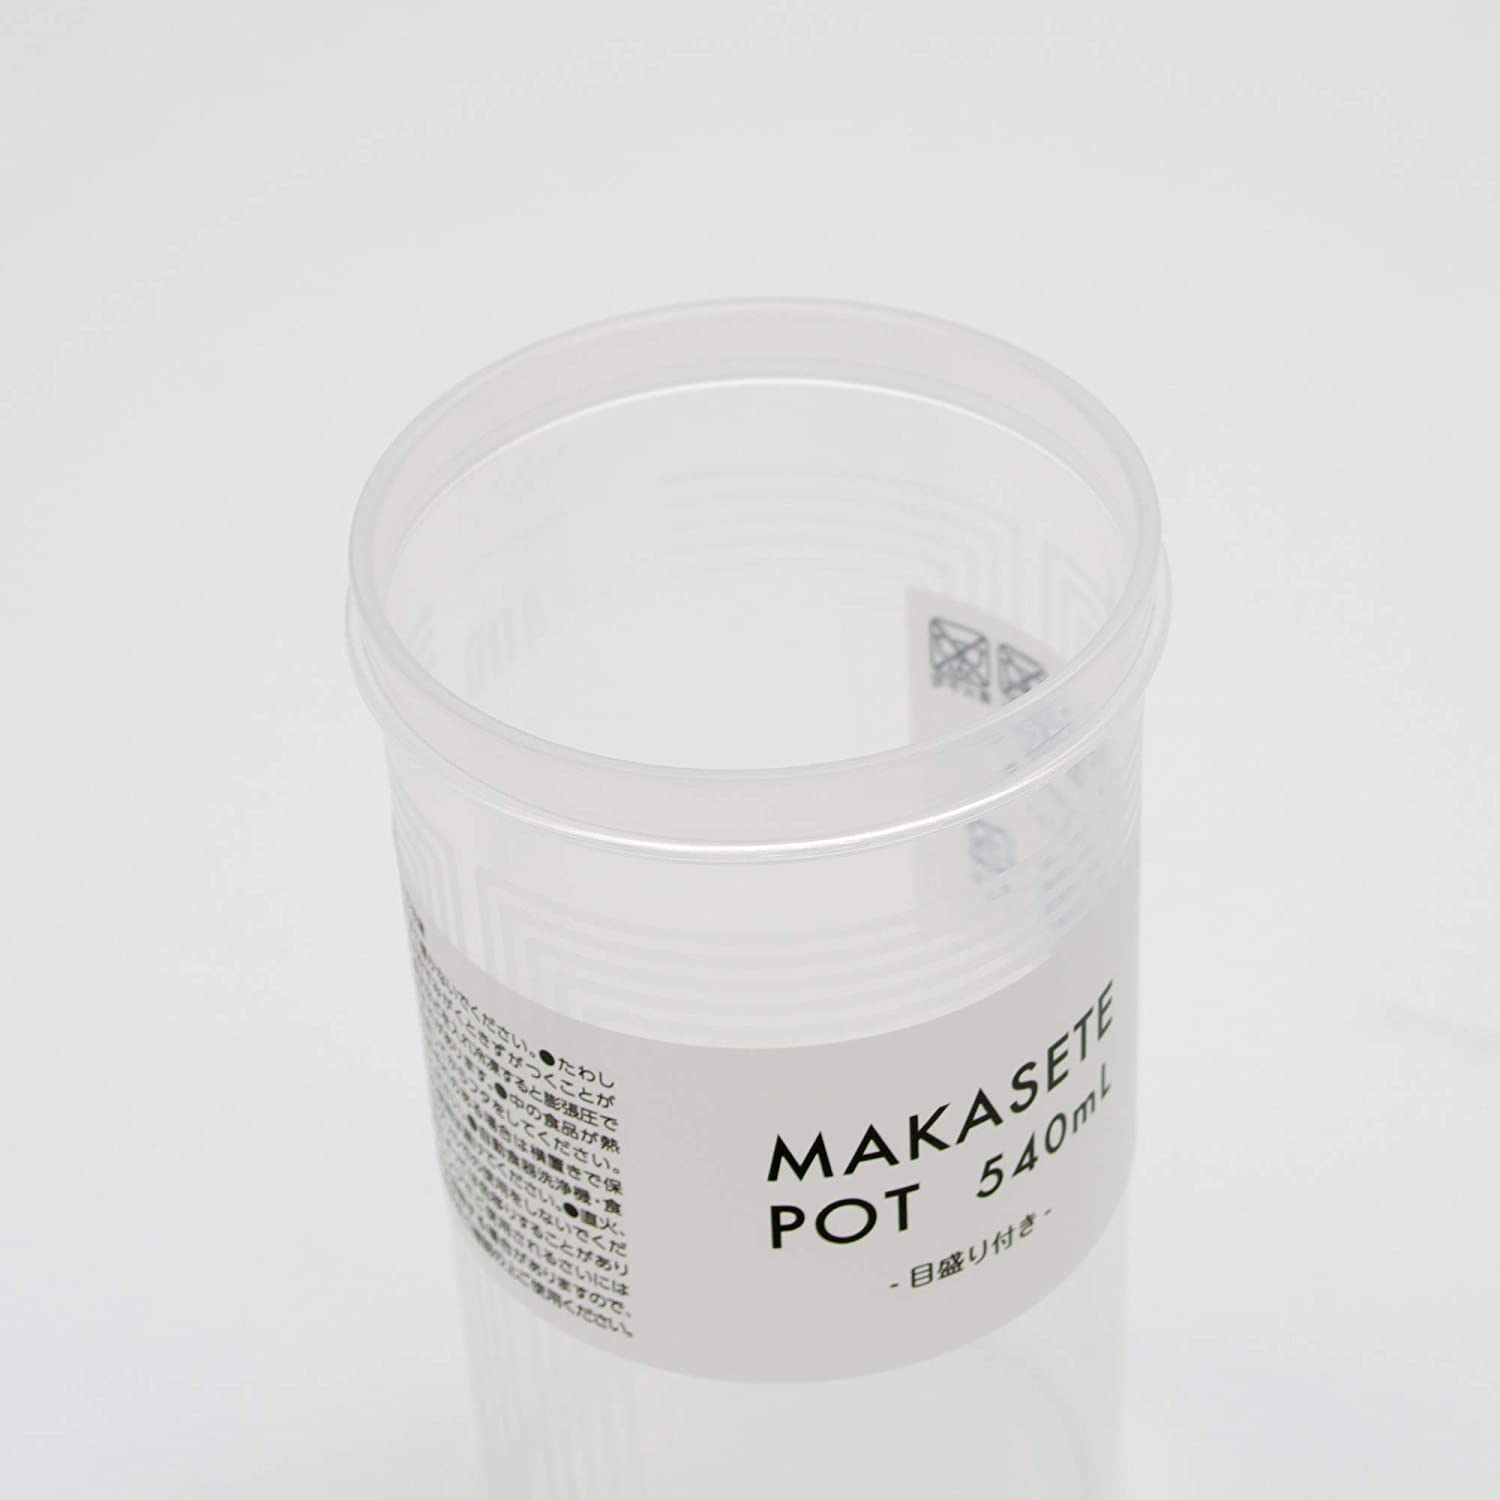 Protein Makasete Pot Simple Shaker Bottle for Salad Dressing Clear Sauce Smoothies 18 oz Made in Japan Meal Replacements